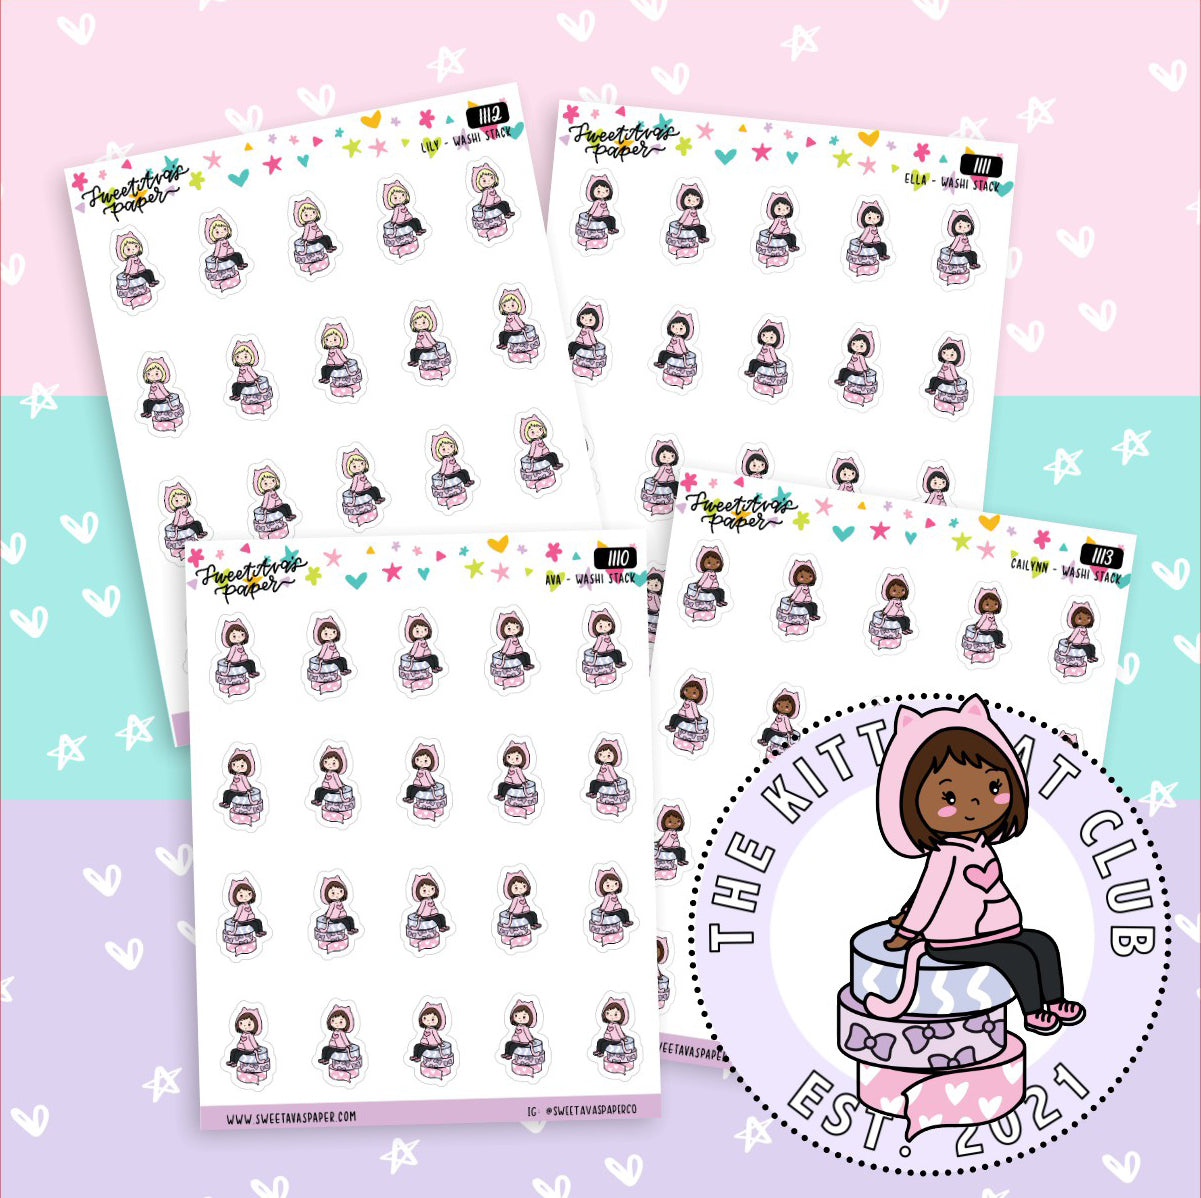 Laptop Planner Stickers - Girl Boss Stickers - Work Stickers - Design Stickers - Doodle Planner Stickers - Character Sticker - 1113